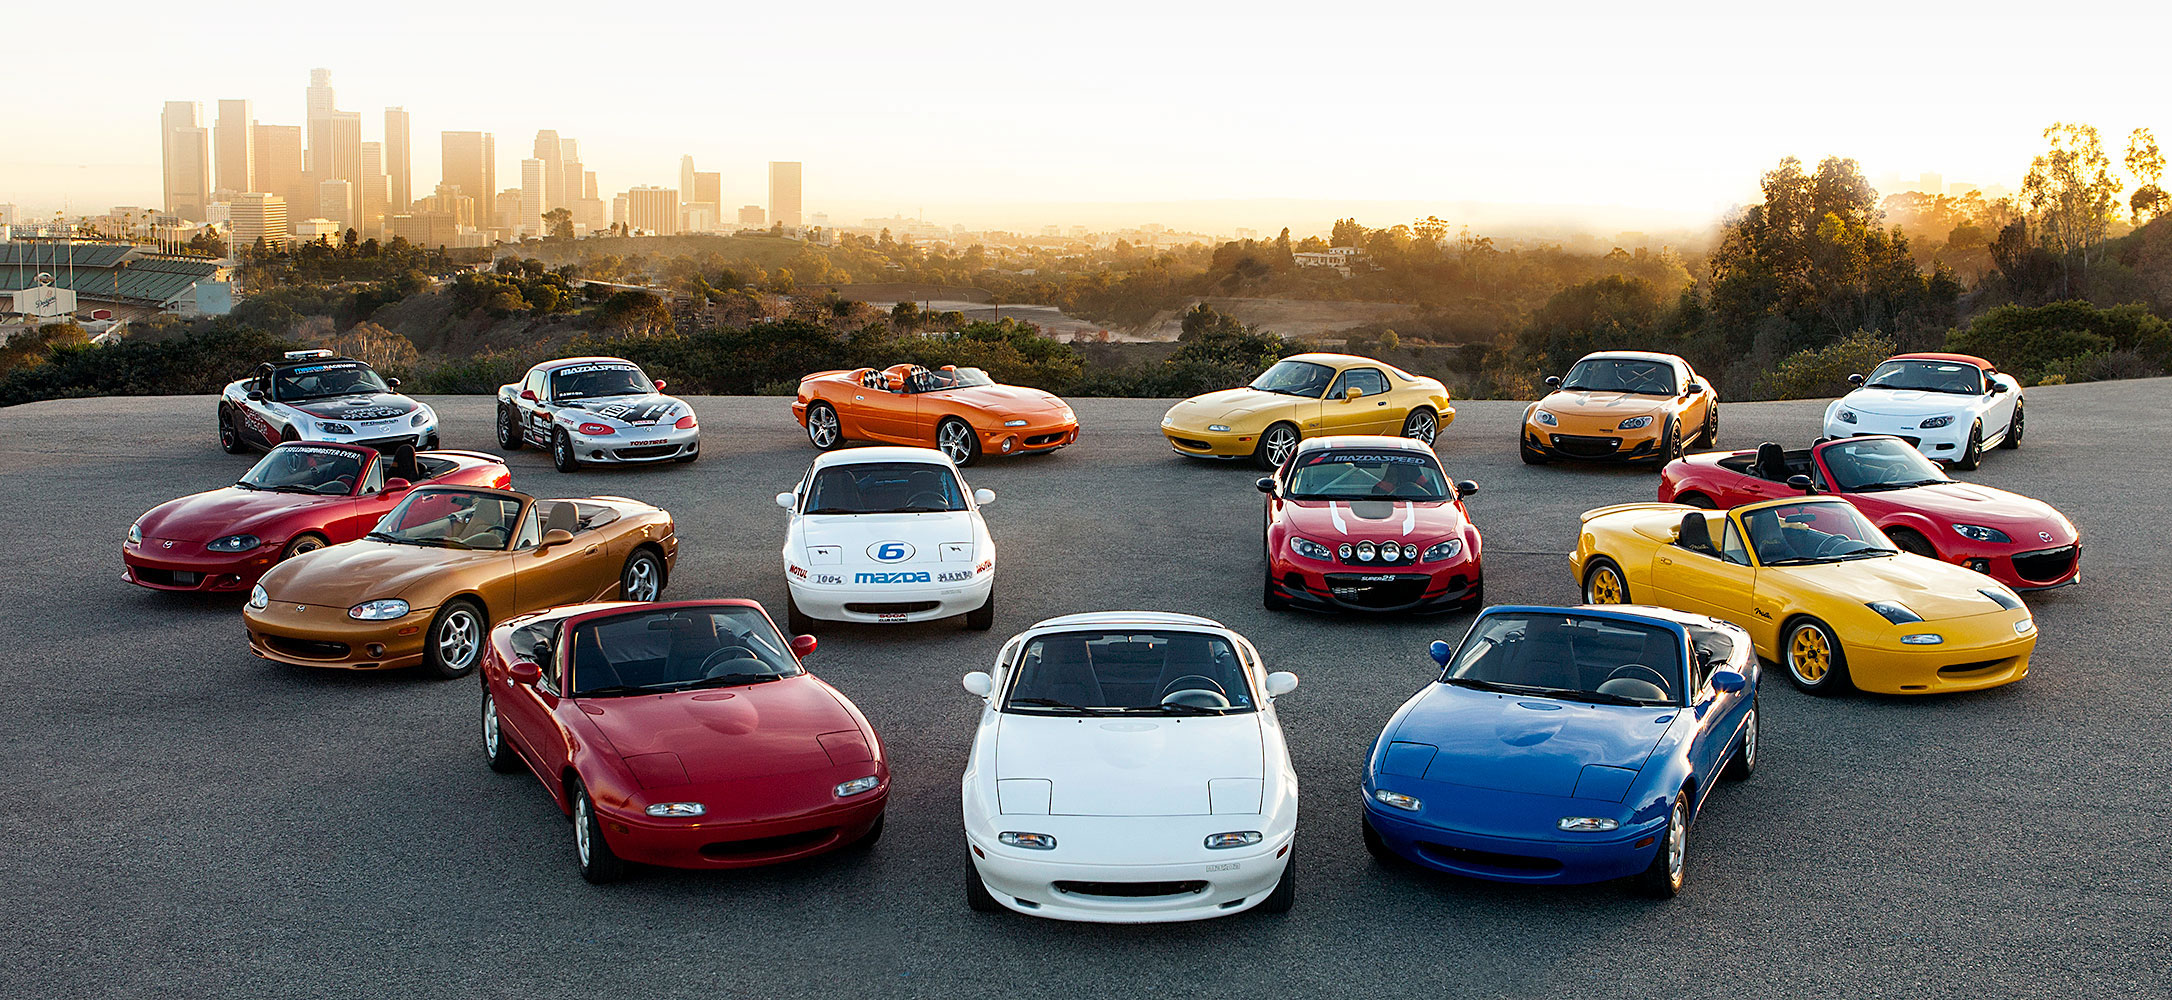 2016 Mazda Mx 5 Why It Matters And Where It Came From